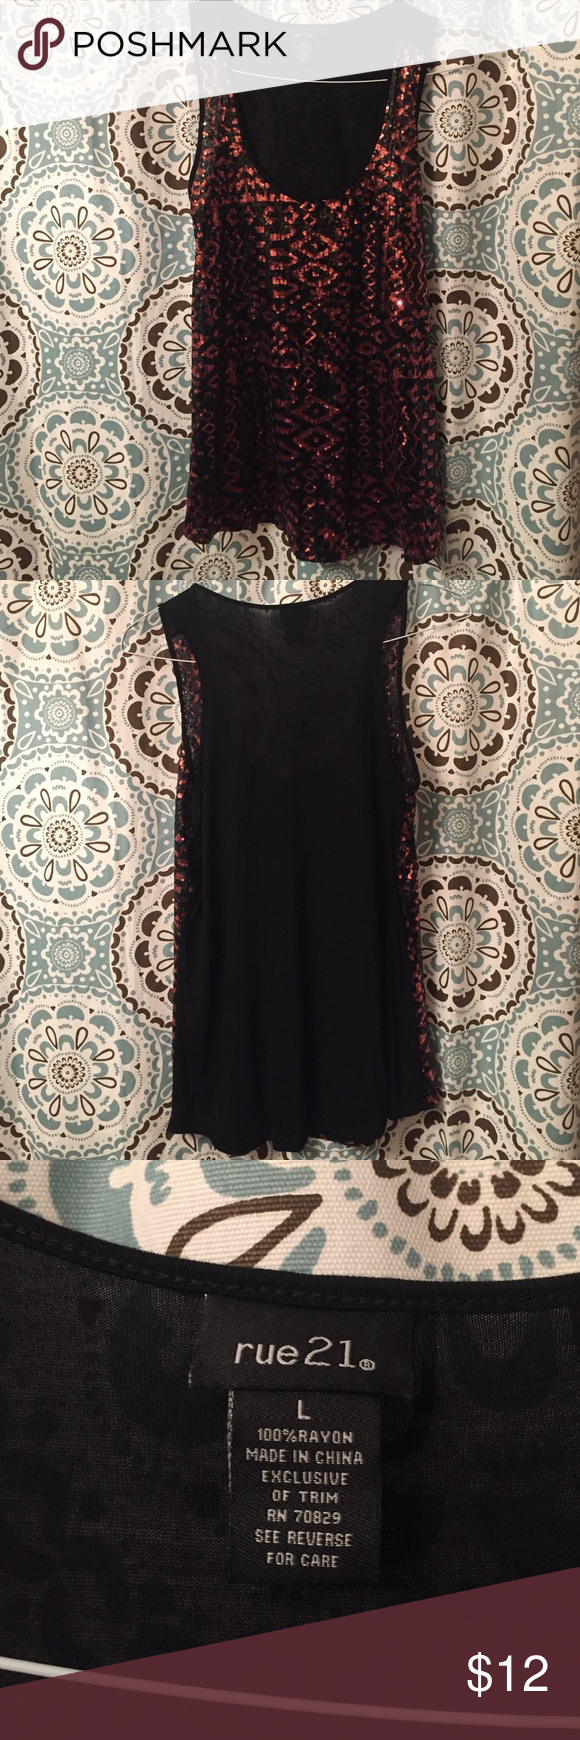 Rue 21 sequin studded red and black top Red and black sequin stuffed rue 21 phone. Size large but would work for a medium or large. Can dress up or down. Never worn, soft material, and great condition. Make an offer! Rue 21 Tops